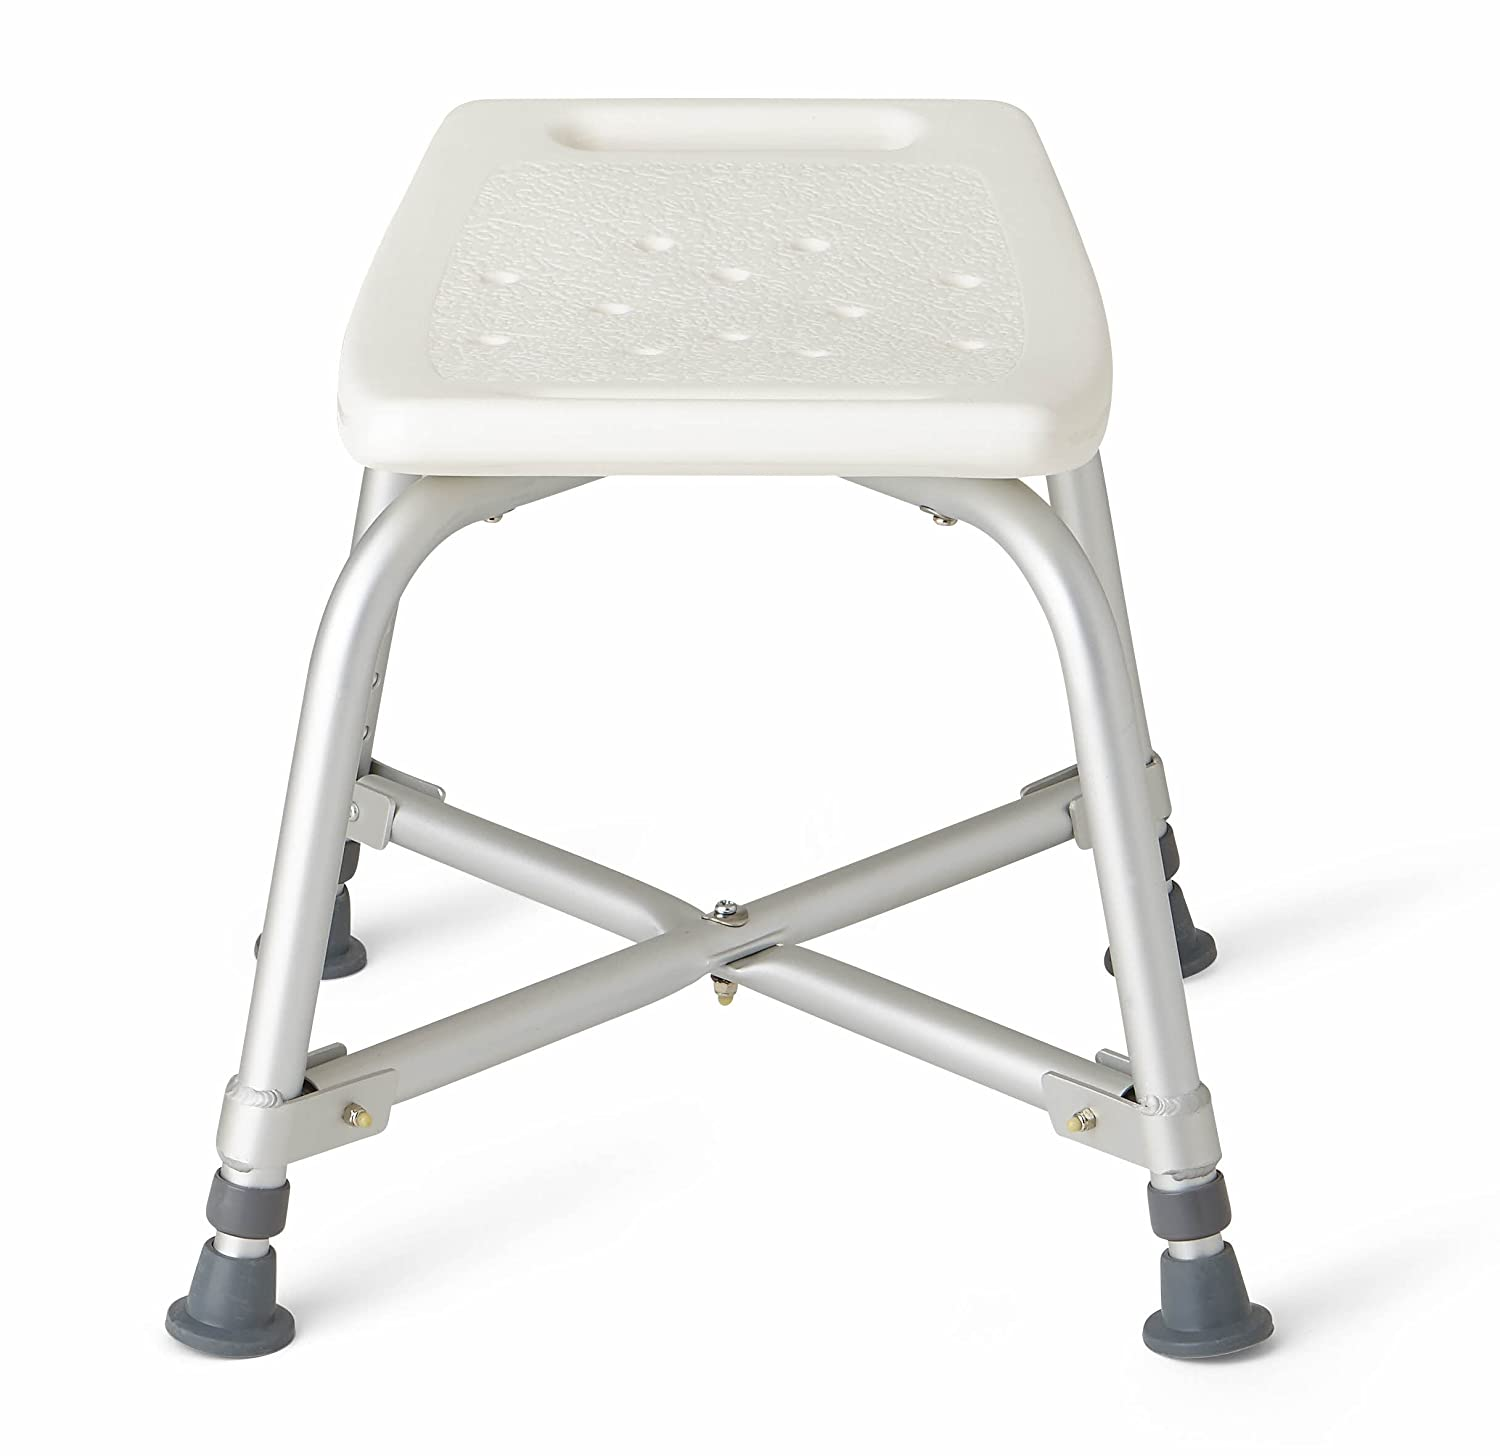 Amazon Medline Bariatric Bath Bench without Back Health